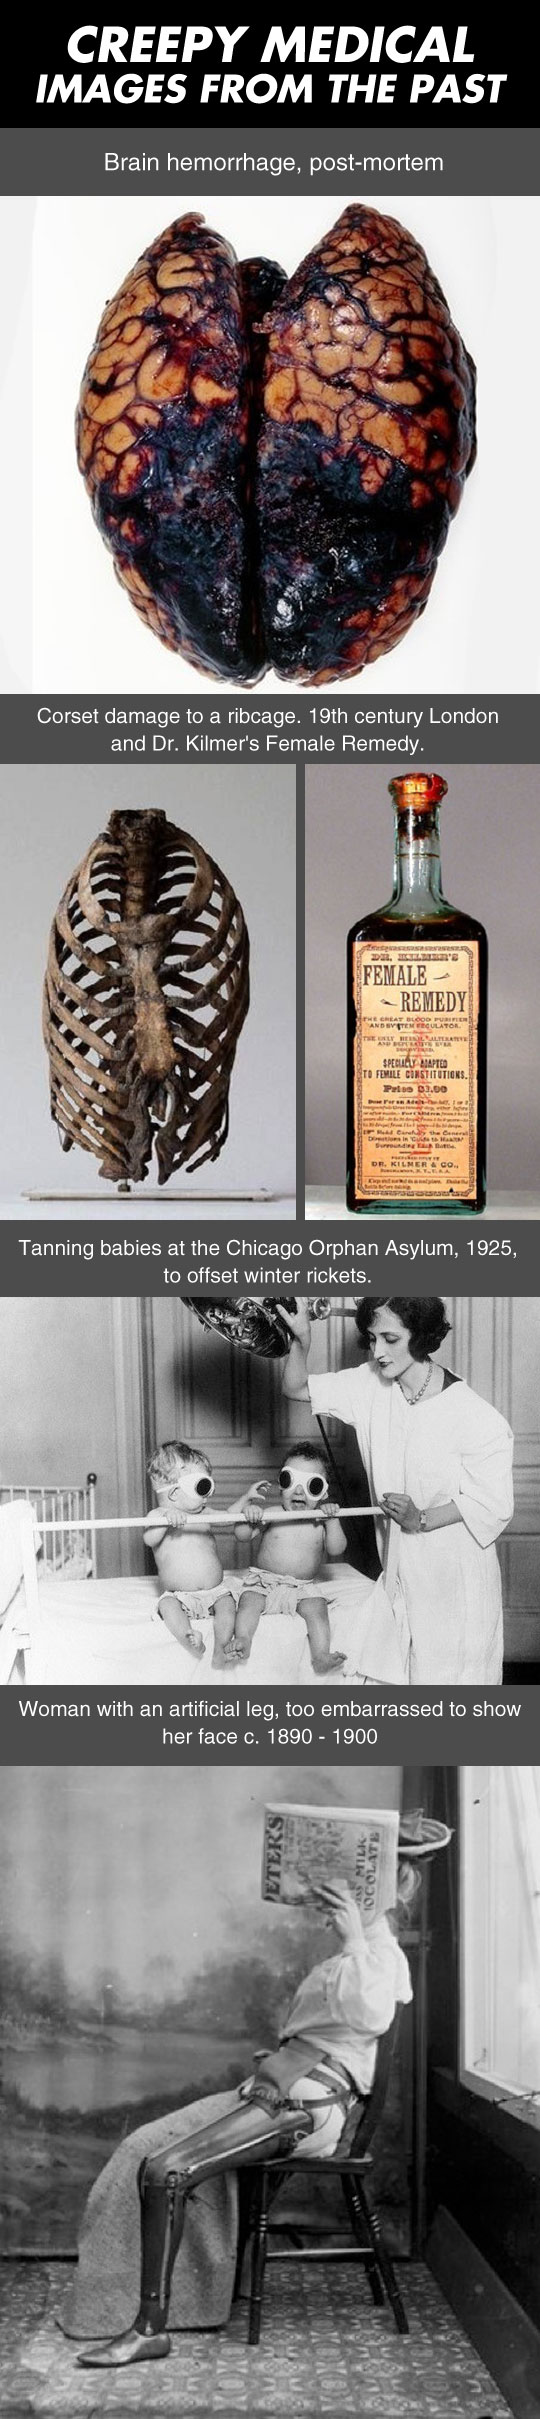 cool-creepy-medical-images-past